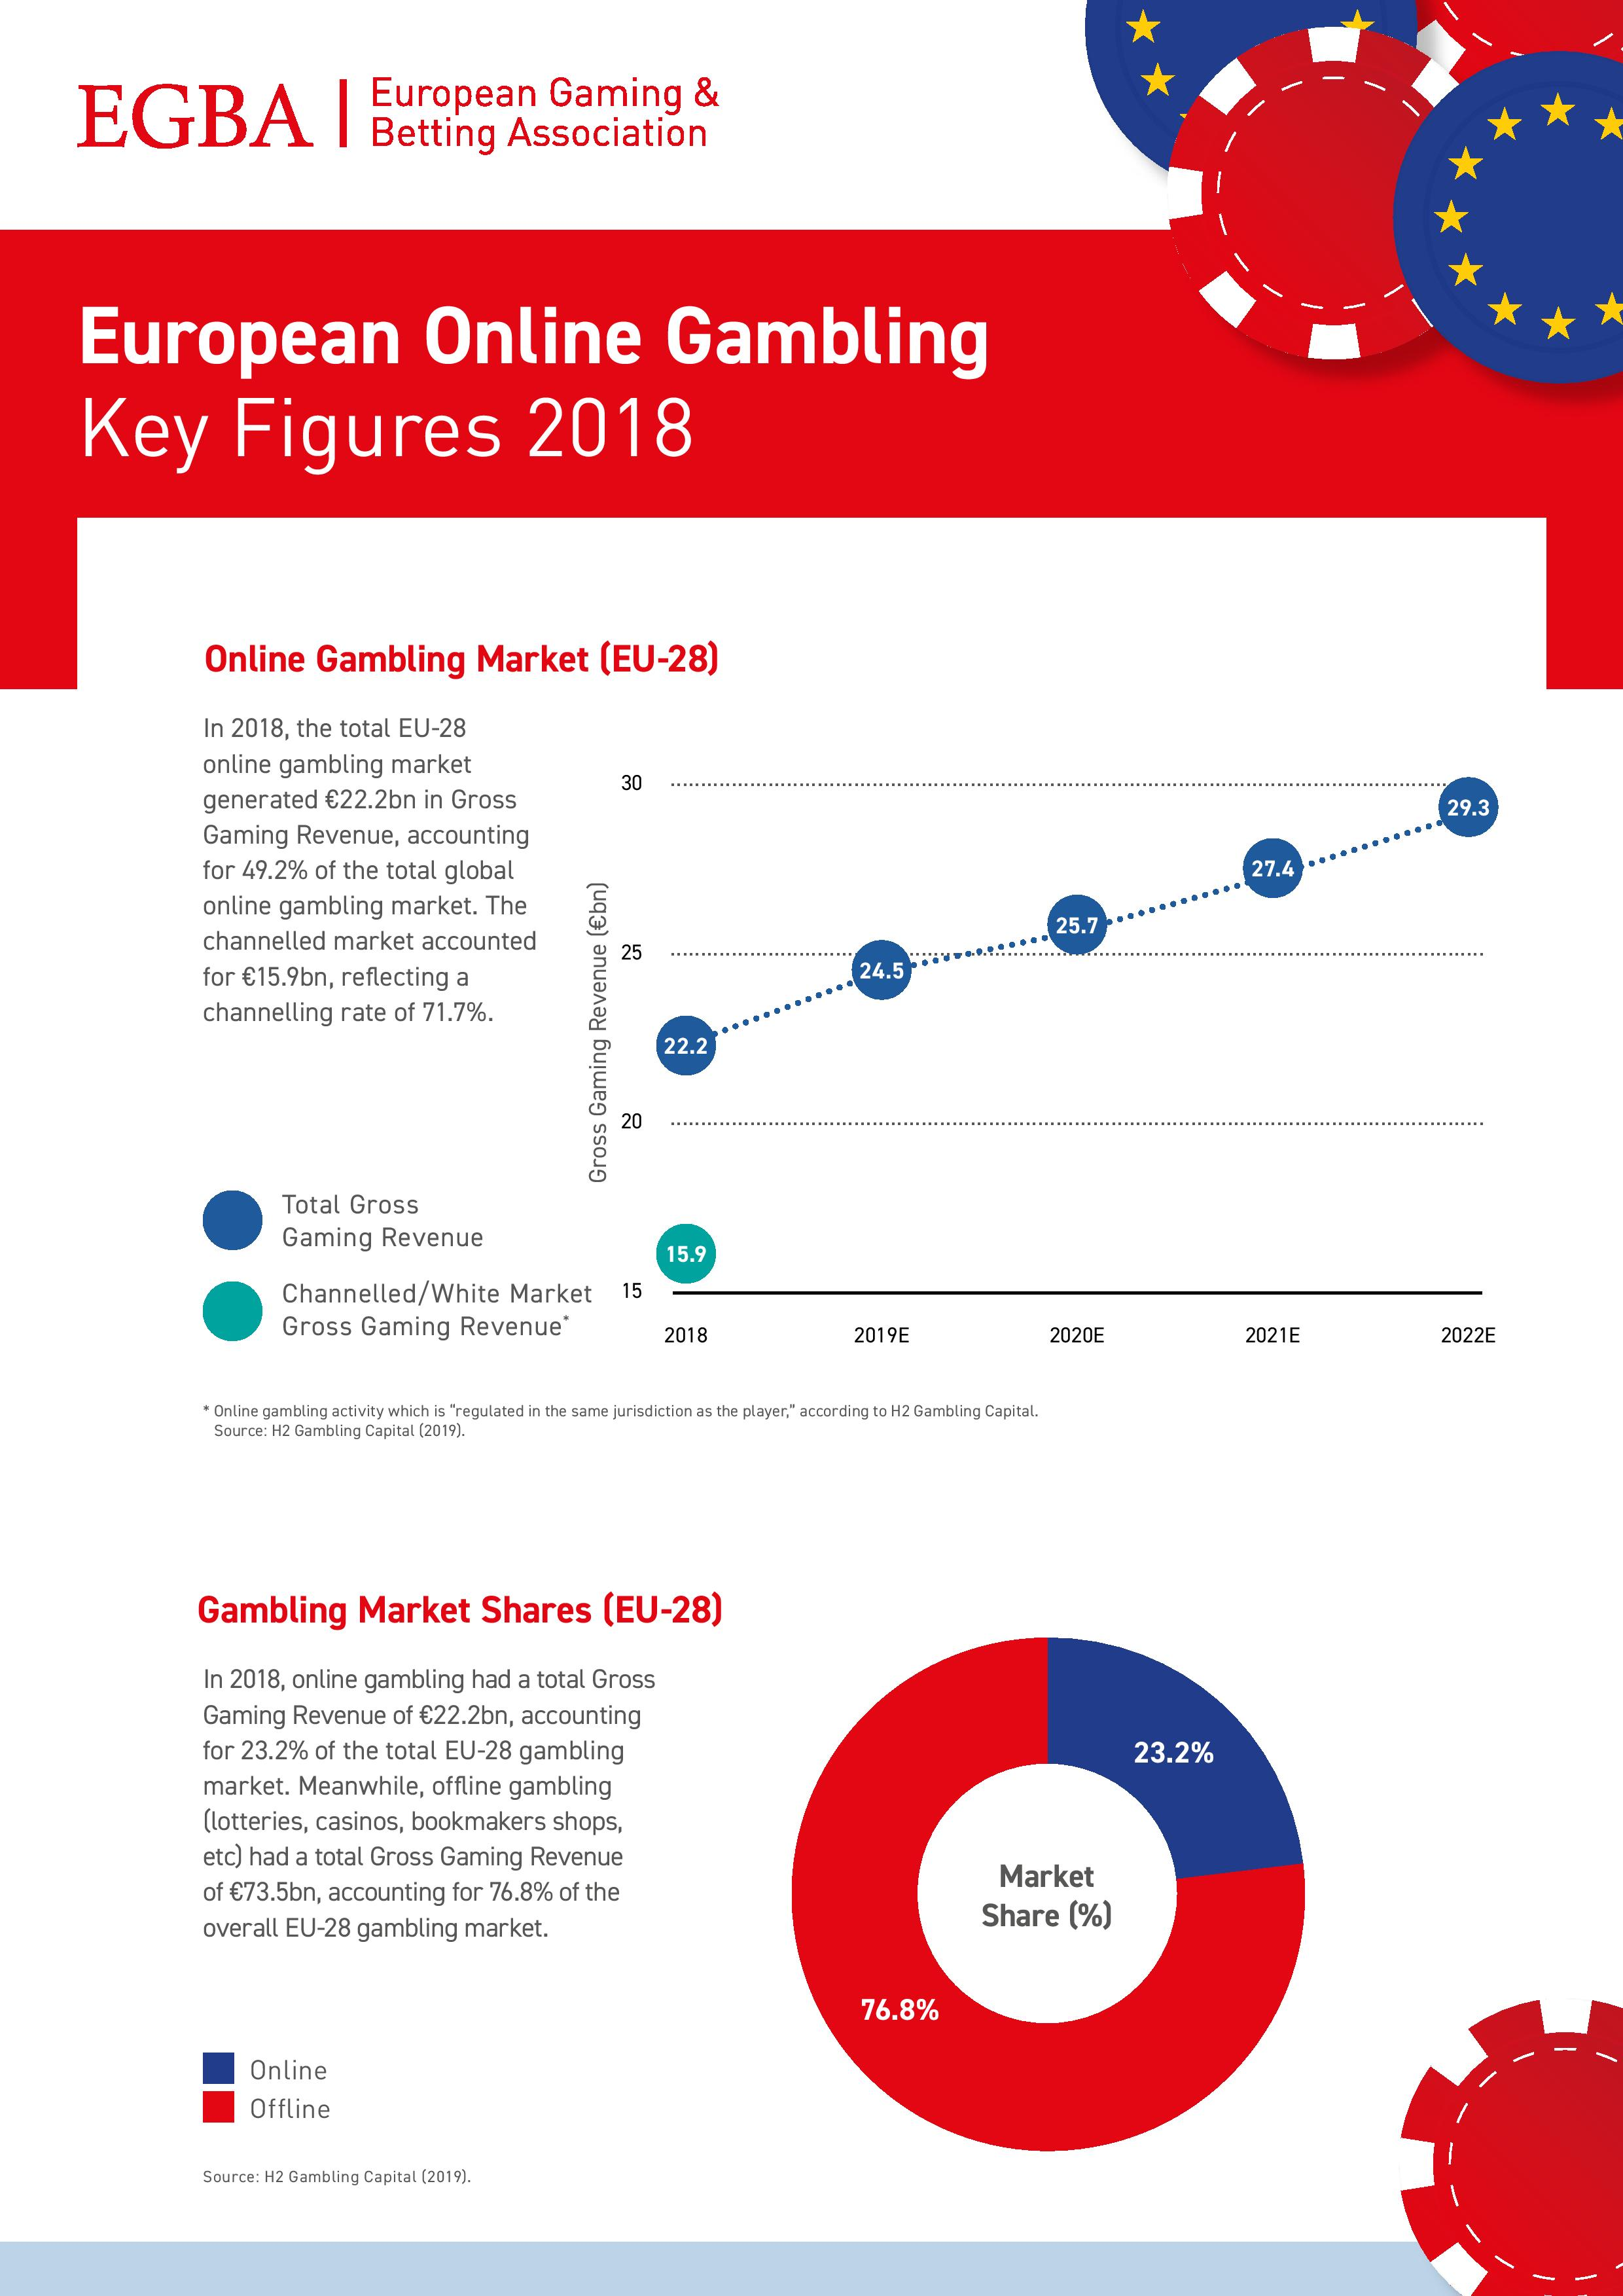 European Online Gambling - Key Figures 2018